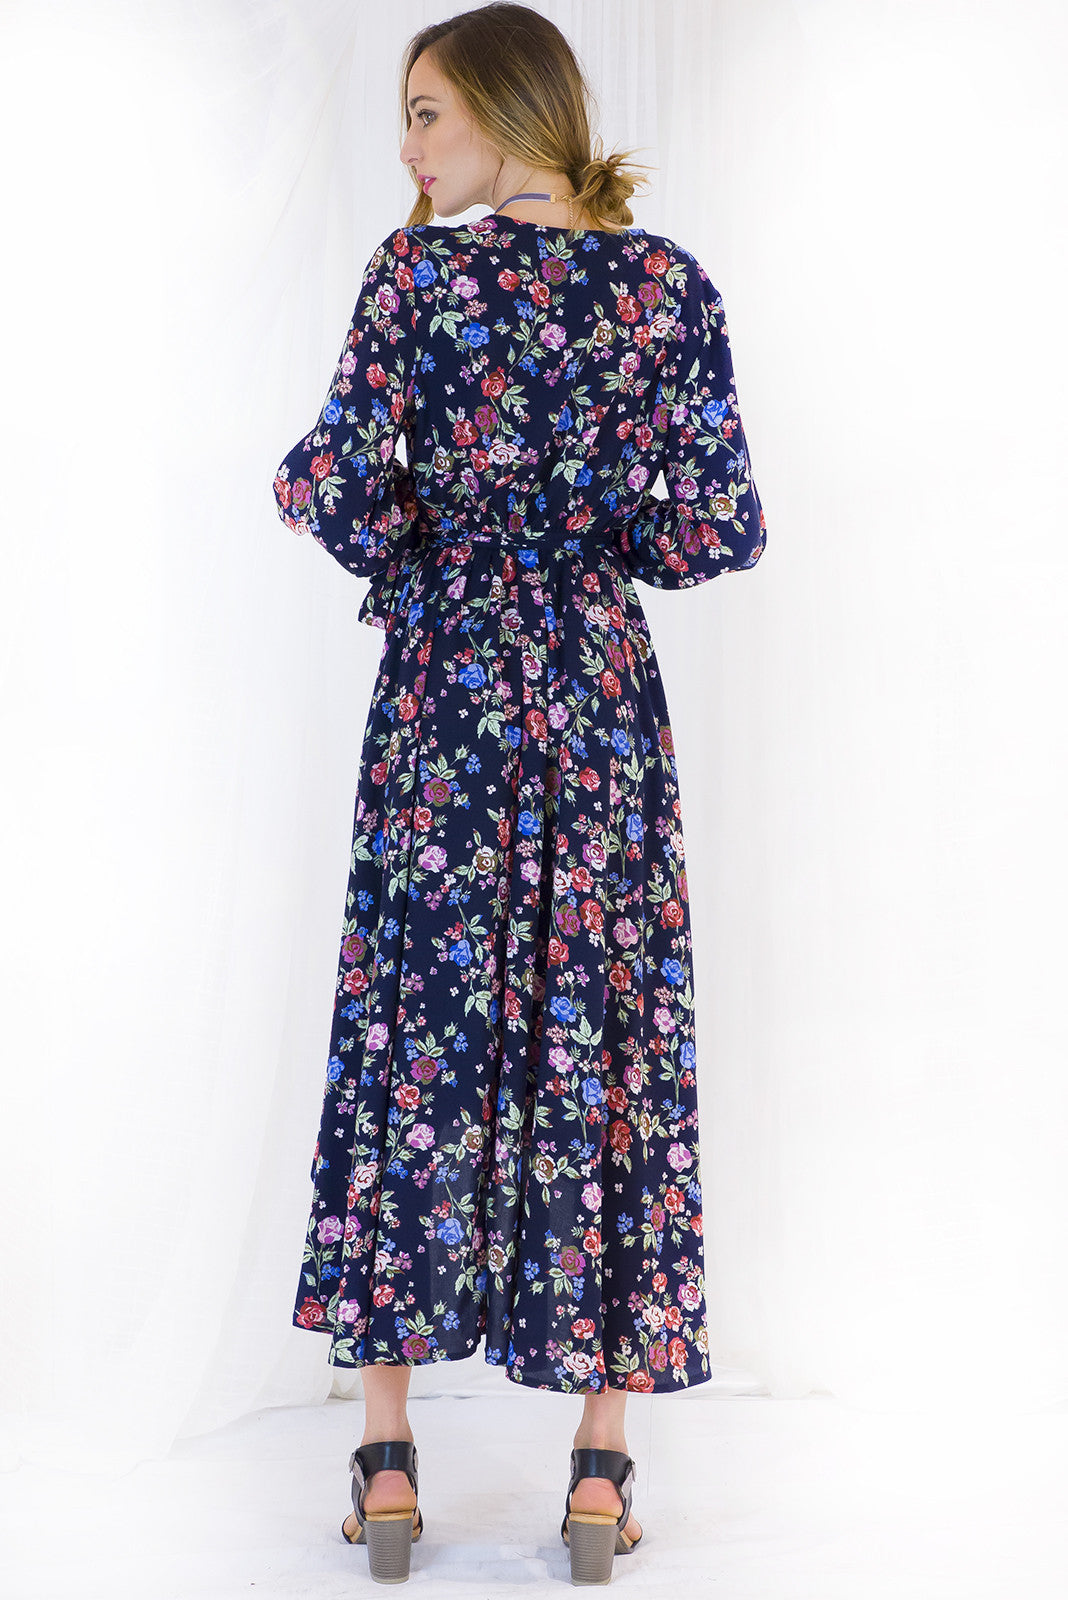 Daydreamer Flower Market Maxi Wrap Dress